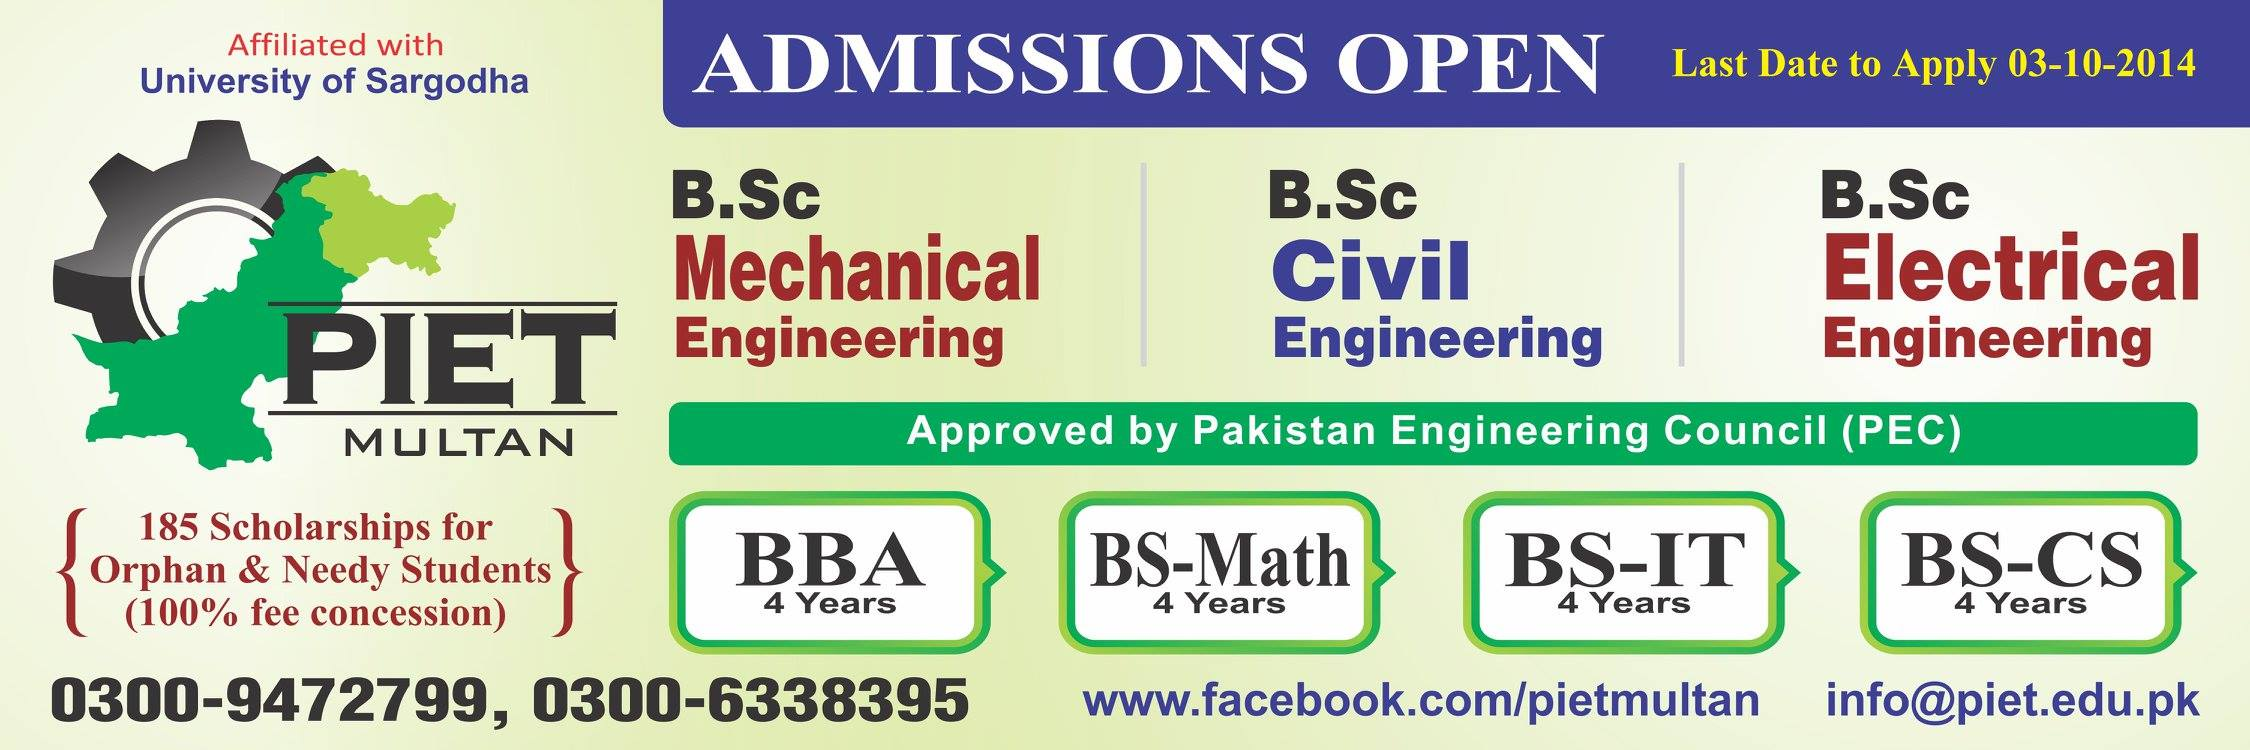 Pakistan Institute of Engineering &Technology (PIET) Multan Admission Notice 2014-2015 for B.Sc Mechanical Engineering, B.Sc Electrical Engineering, B.Sc Civil Engineering